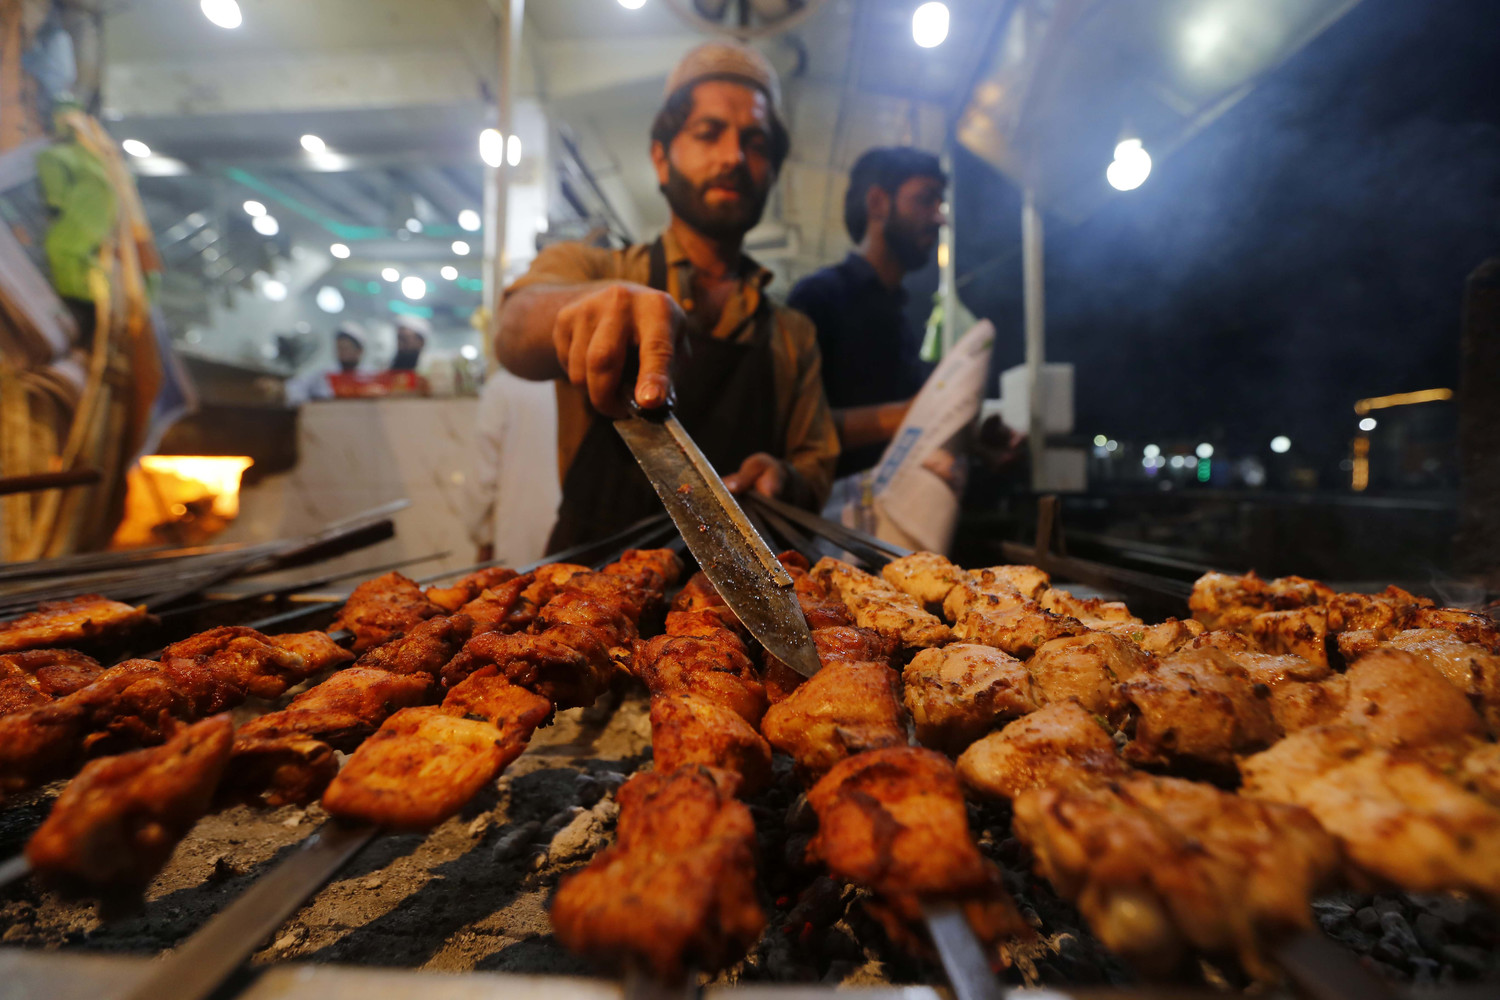 A man sells roasted chicken on a road in Peshawar, Pakistan Oct. 15, the eve of World Food Day. The international day is celebrated Oct. 16 to mark the date in 1945 the U.N. Food and Agriculture Organization was founded.